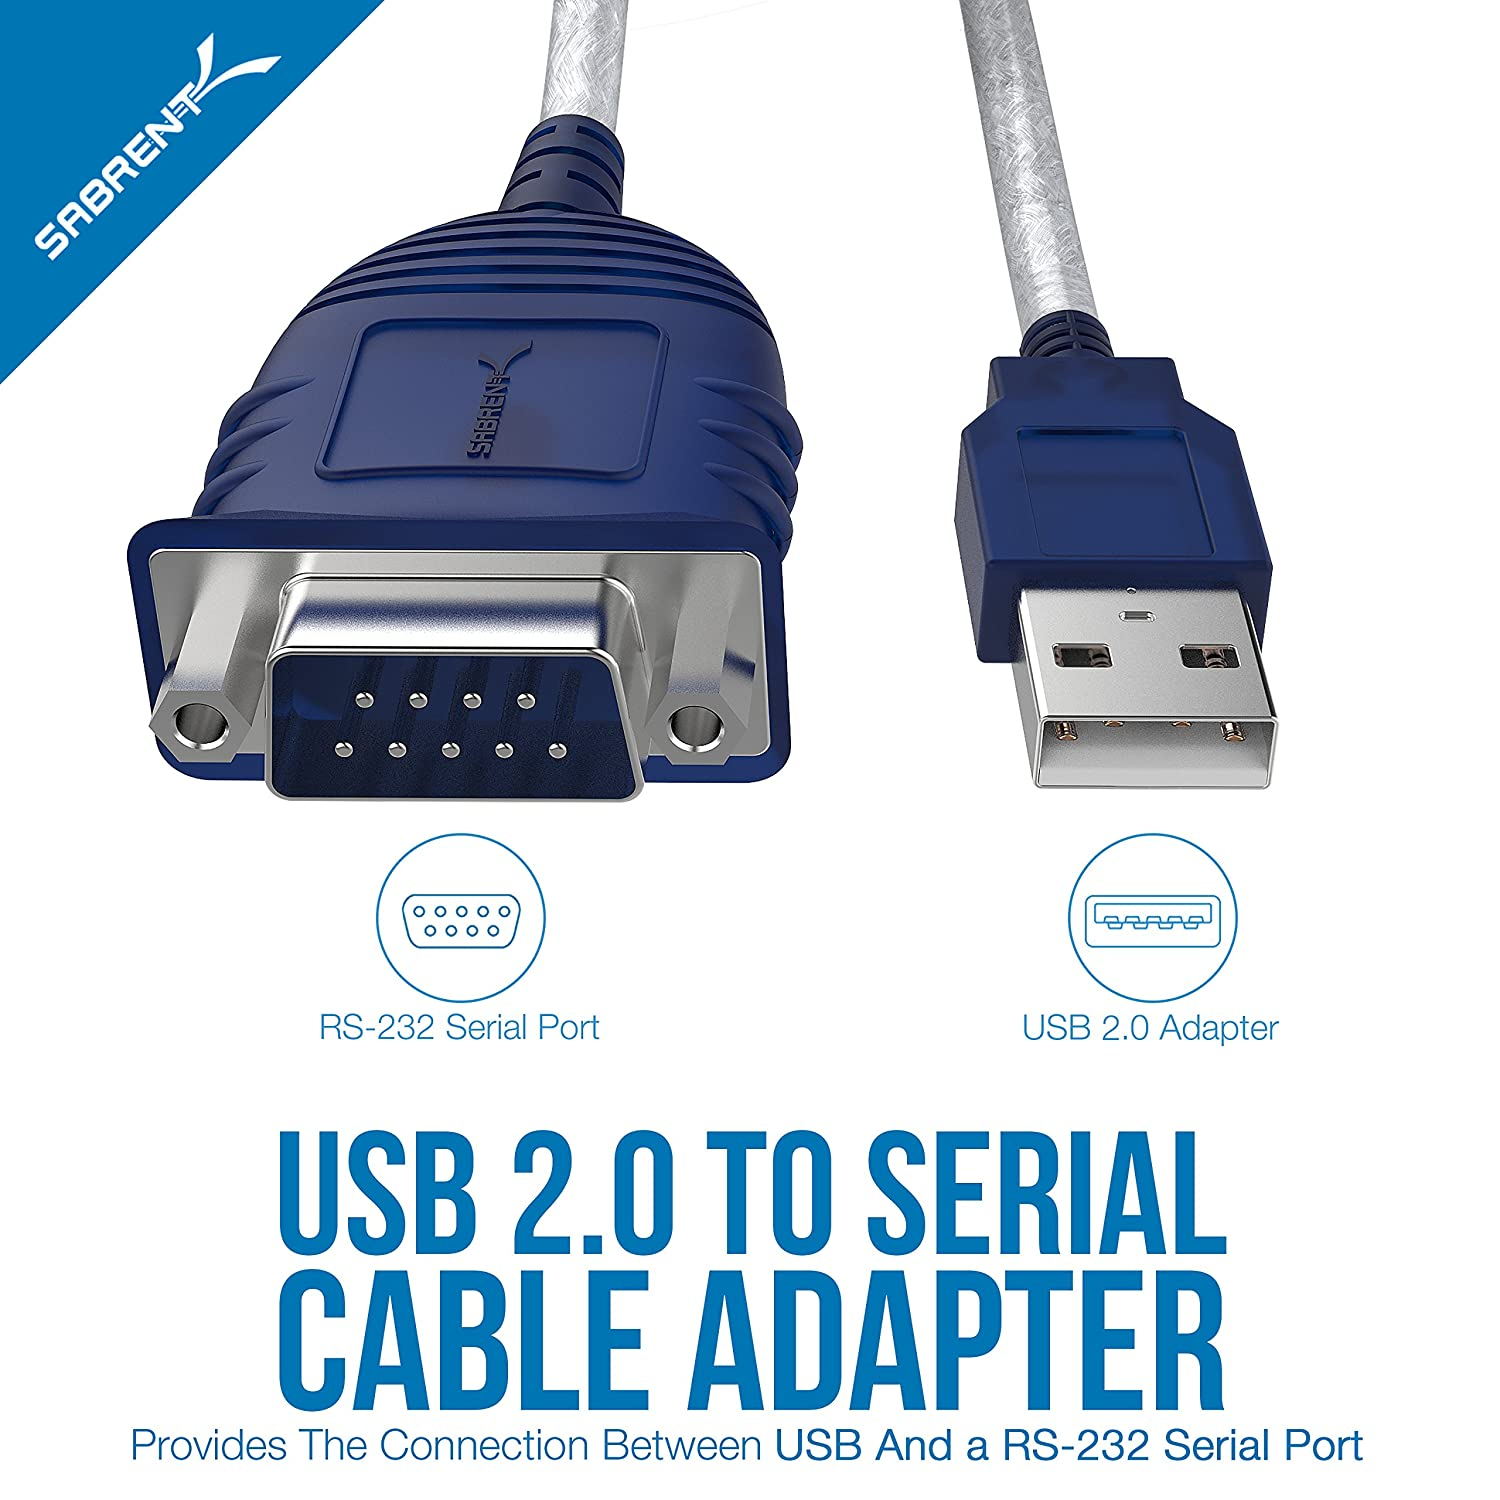 Amazon sabrent usb 20 to serial 9 pin db 9 rs 232 converter amazon sabrent usb 20 to serial 9 pin db 9 rs 232 converter cable prolific chipset hexnuts windows 108187vistaxp mac os x 106 and above publicscrutiny Images